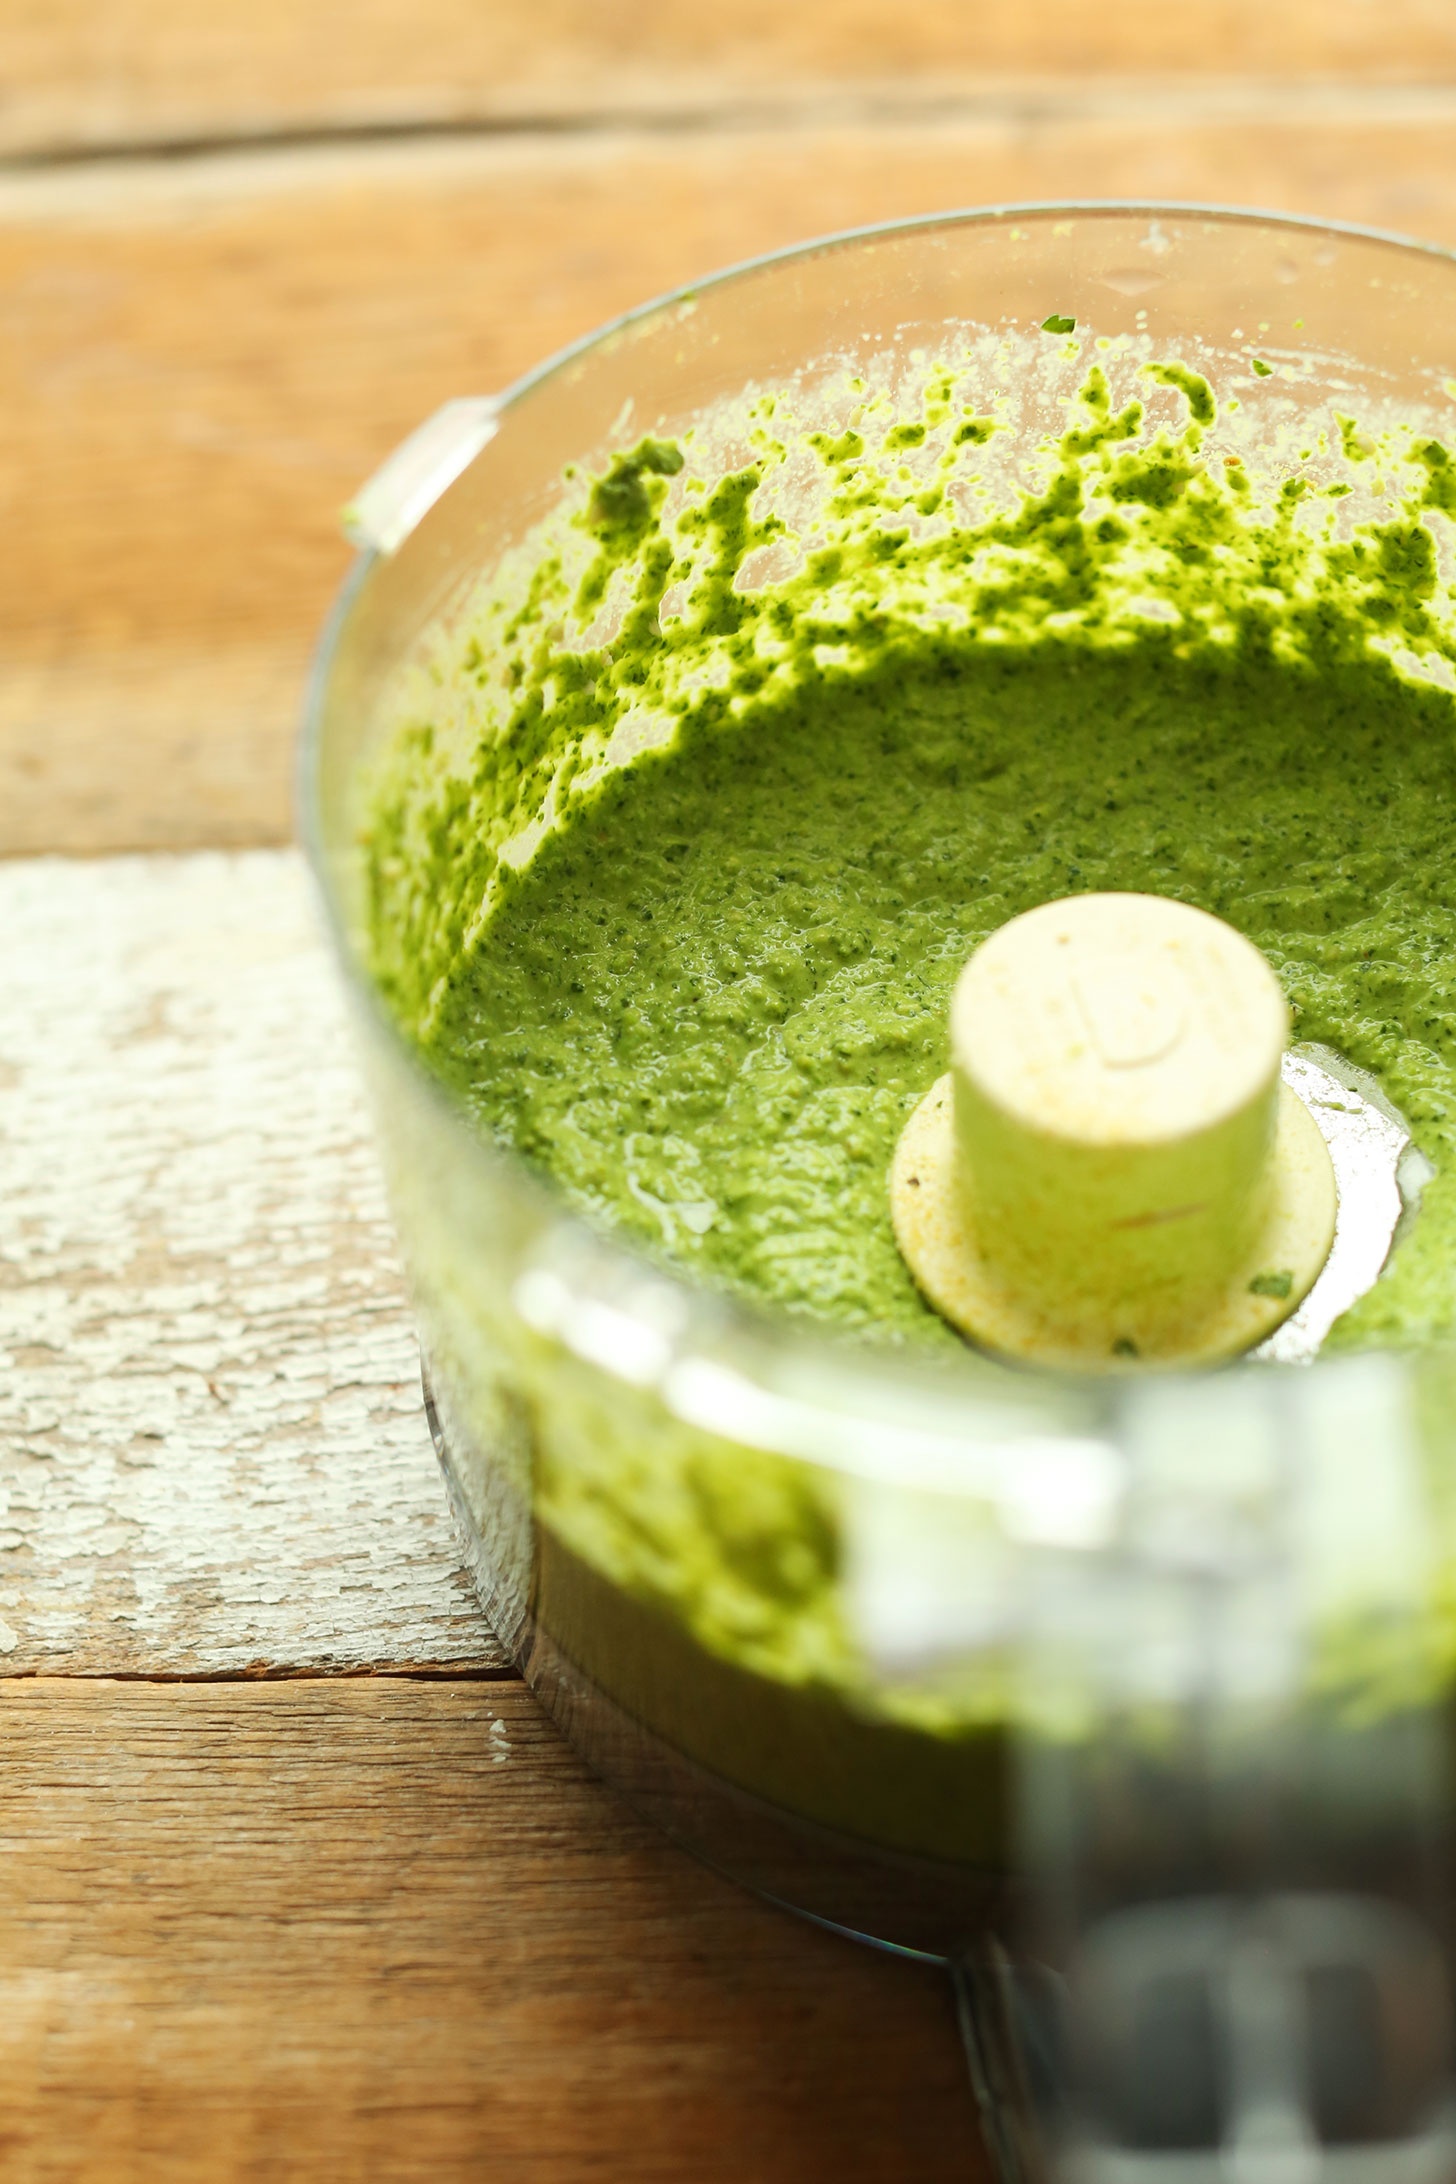 Food processor with freshly blended vegan Pea Pesto